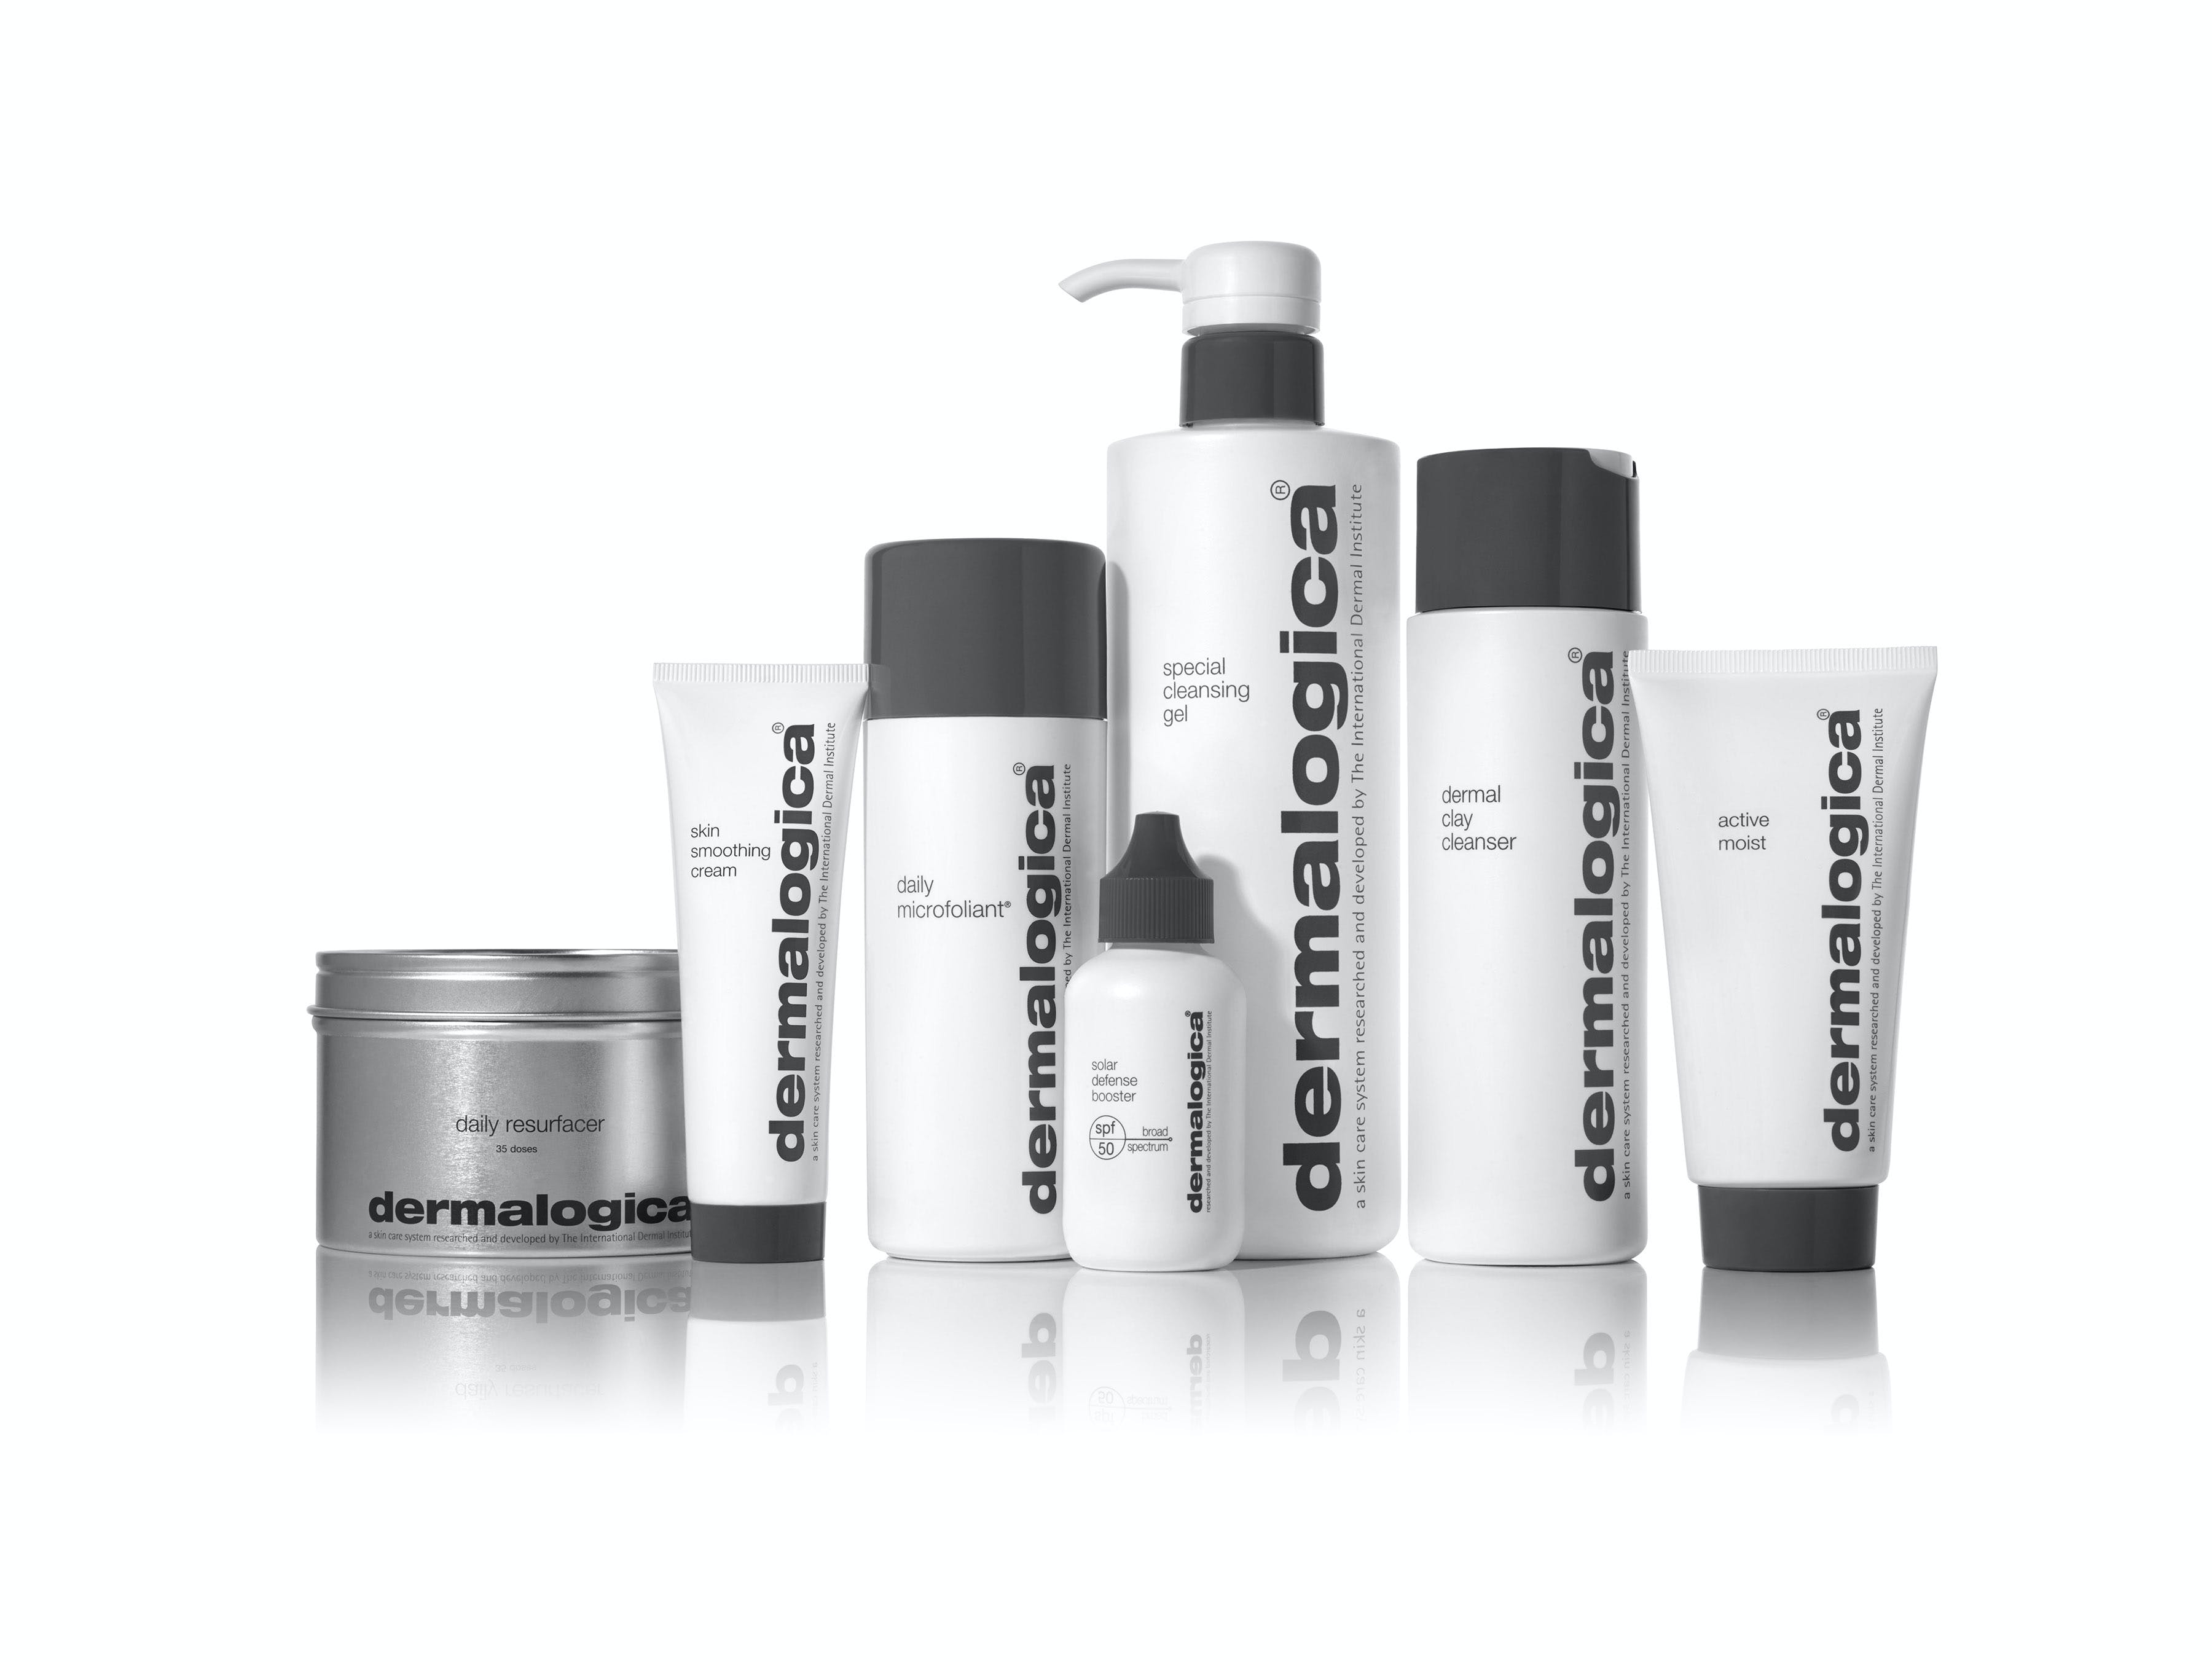 Unilever Extends Its Skin Care Brands With Dermalogica Acquisition Dove Beauty Moisture Facial Foam 100 Gr Marketing Week